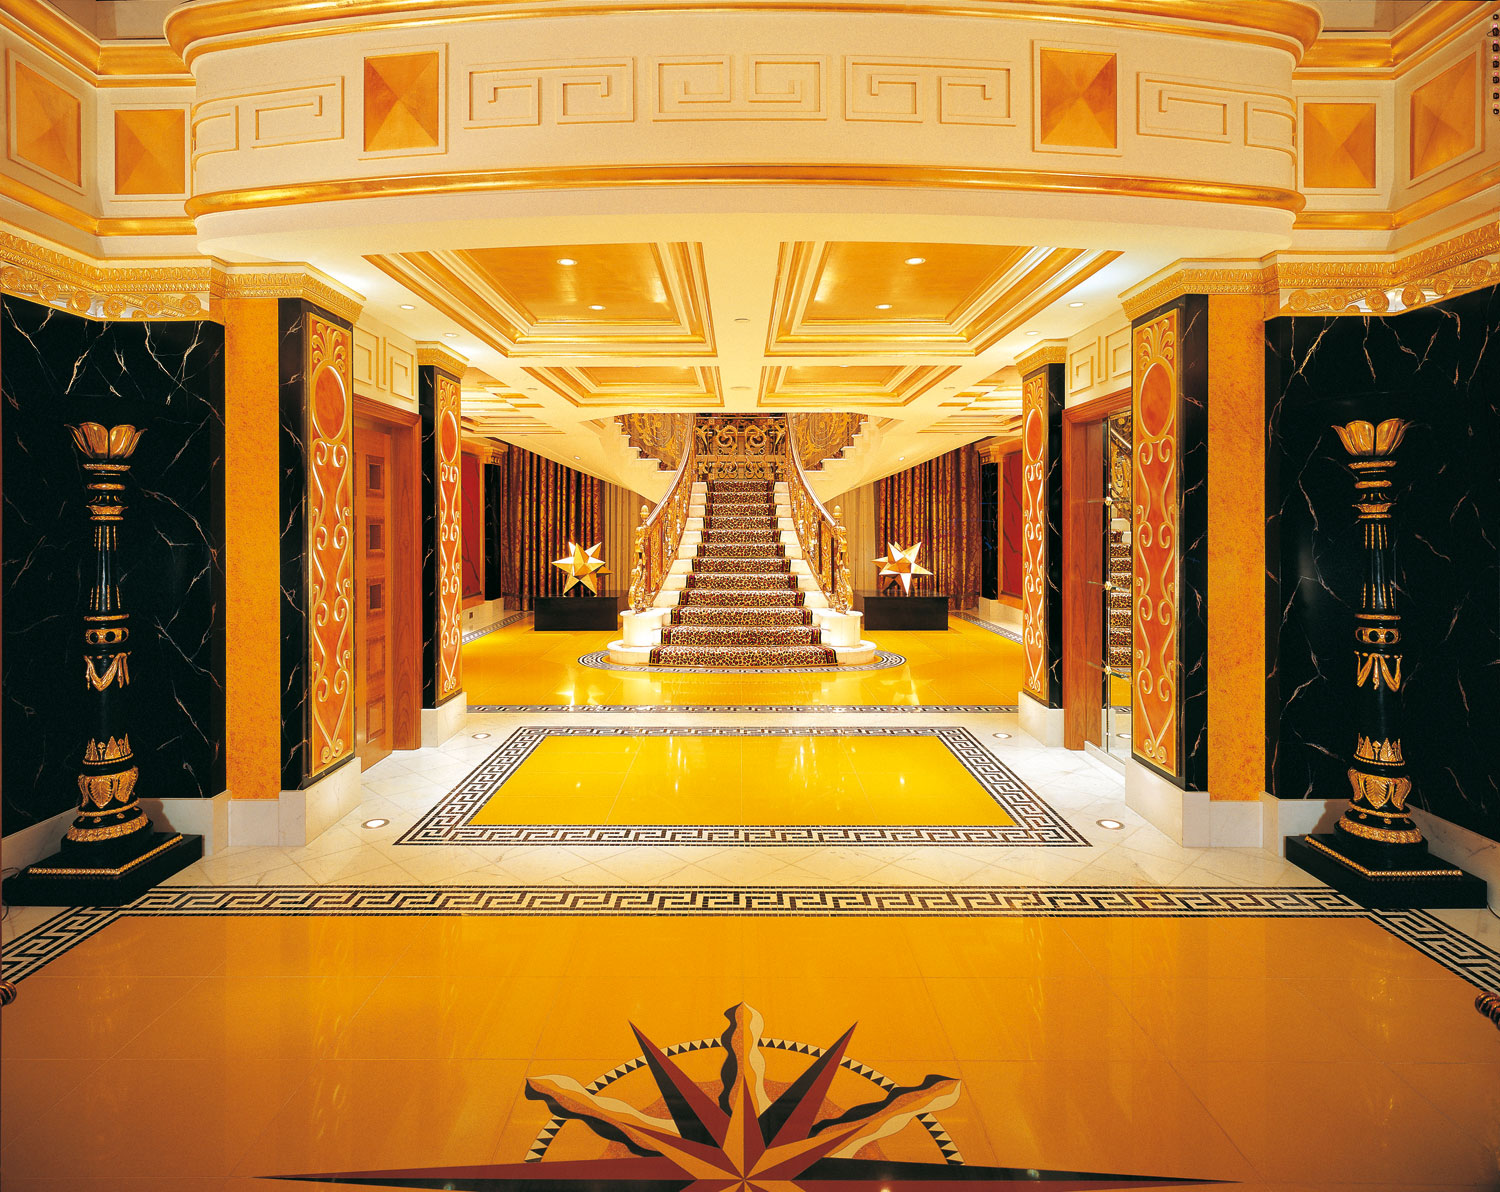 Top 10 most expensive hotel suites in the world 2011 the for Most expensive place to stay in dubai